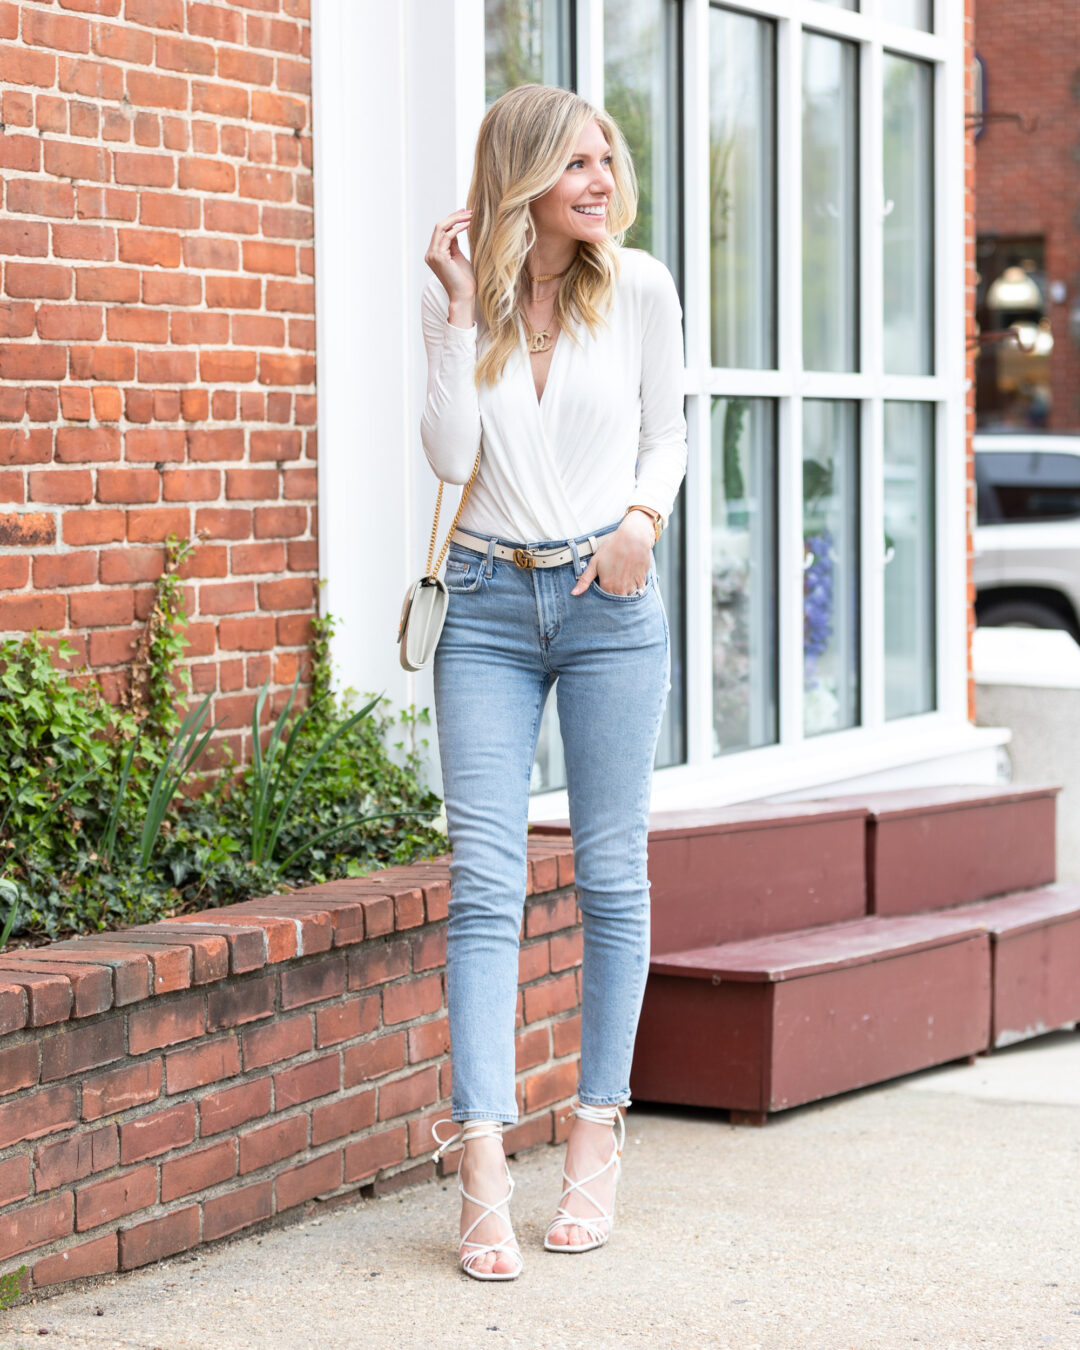 white-bodysuit-and-strap-heels-the-glamorous-gal